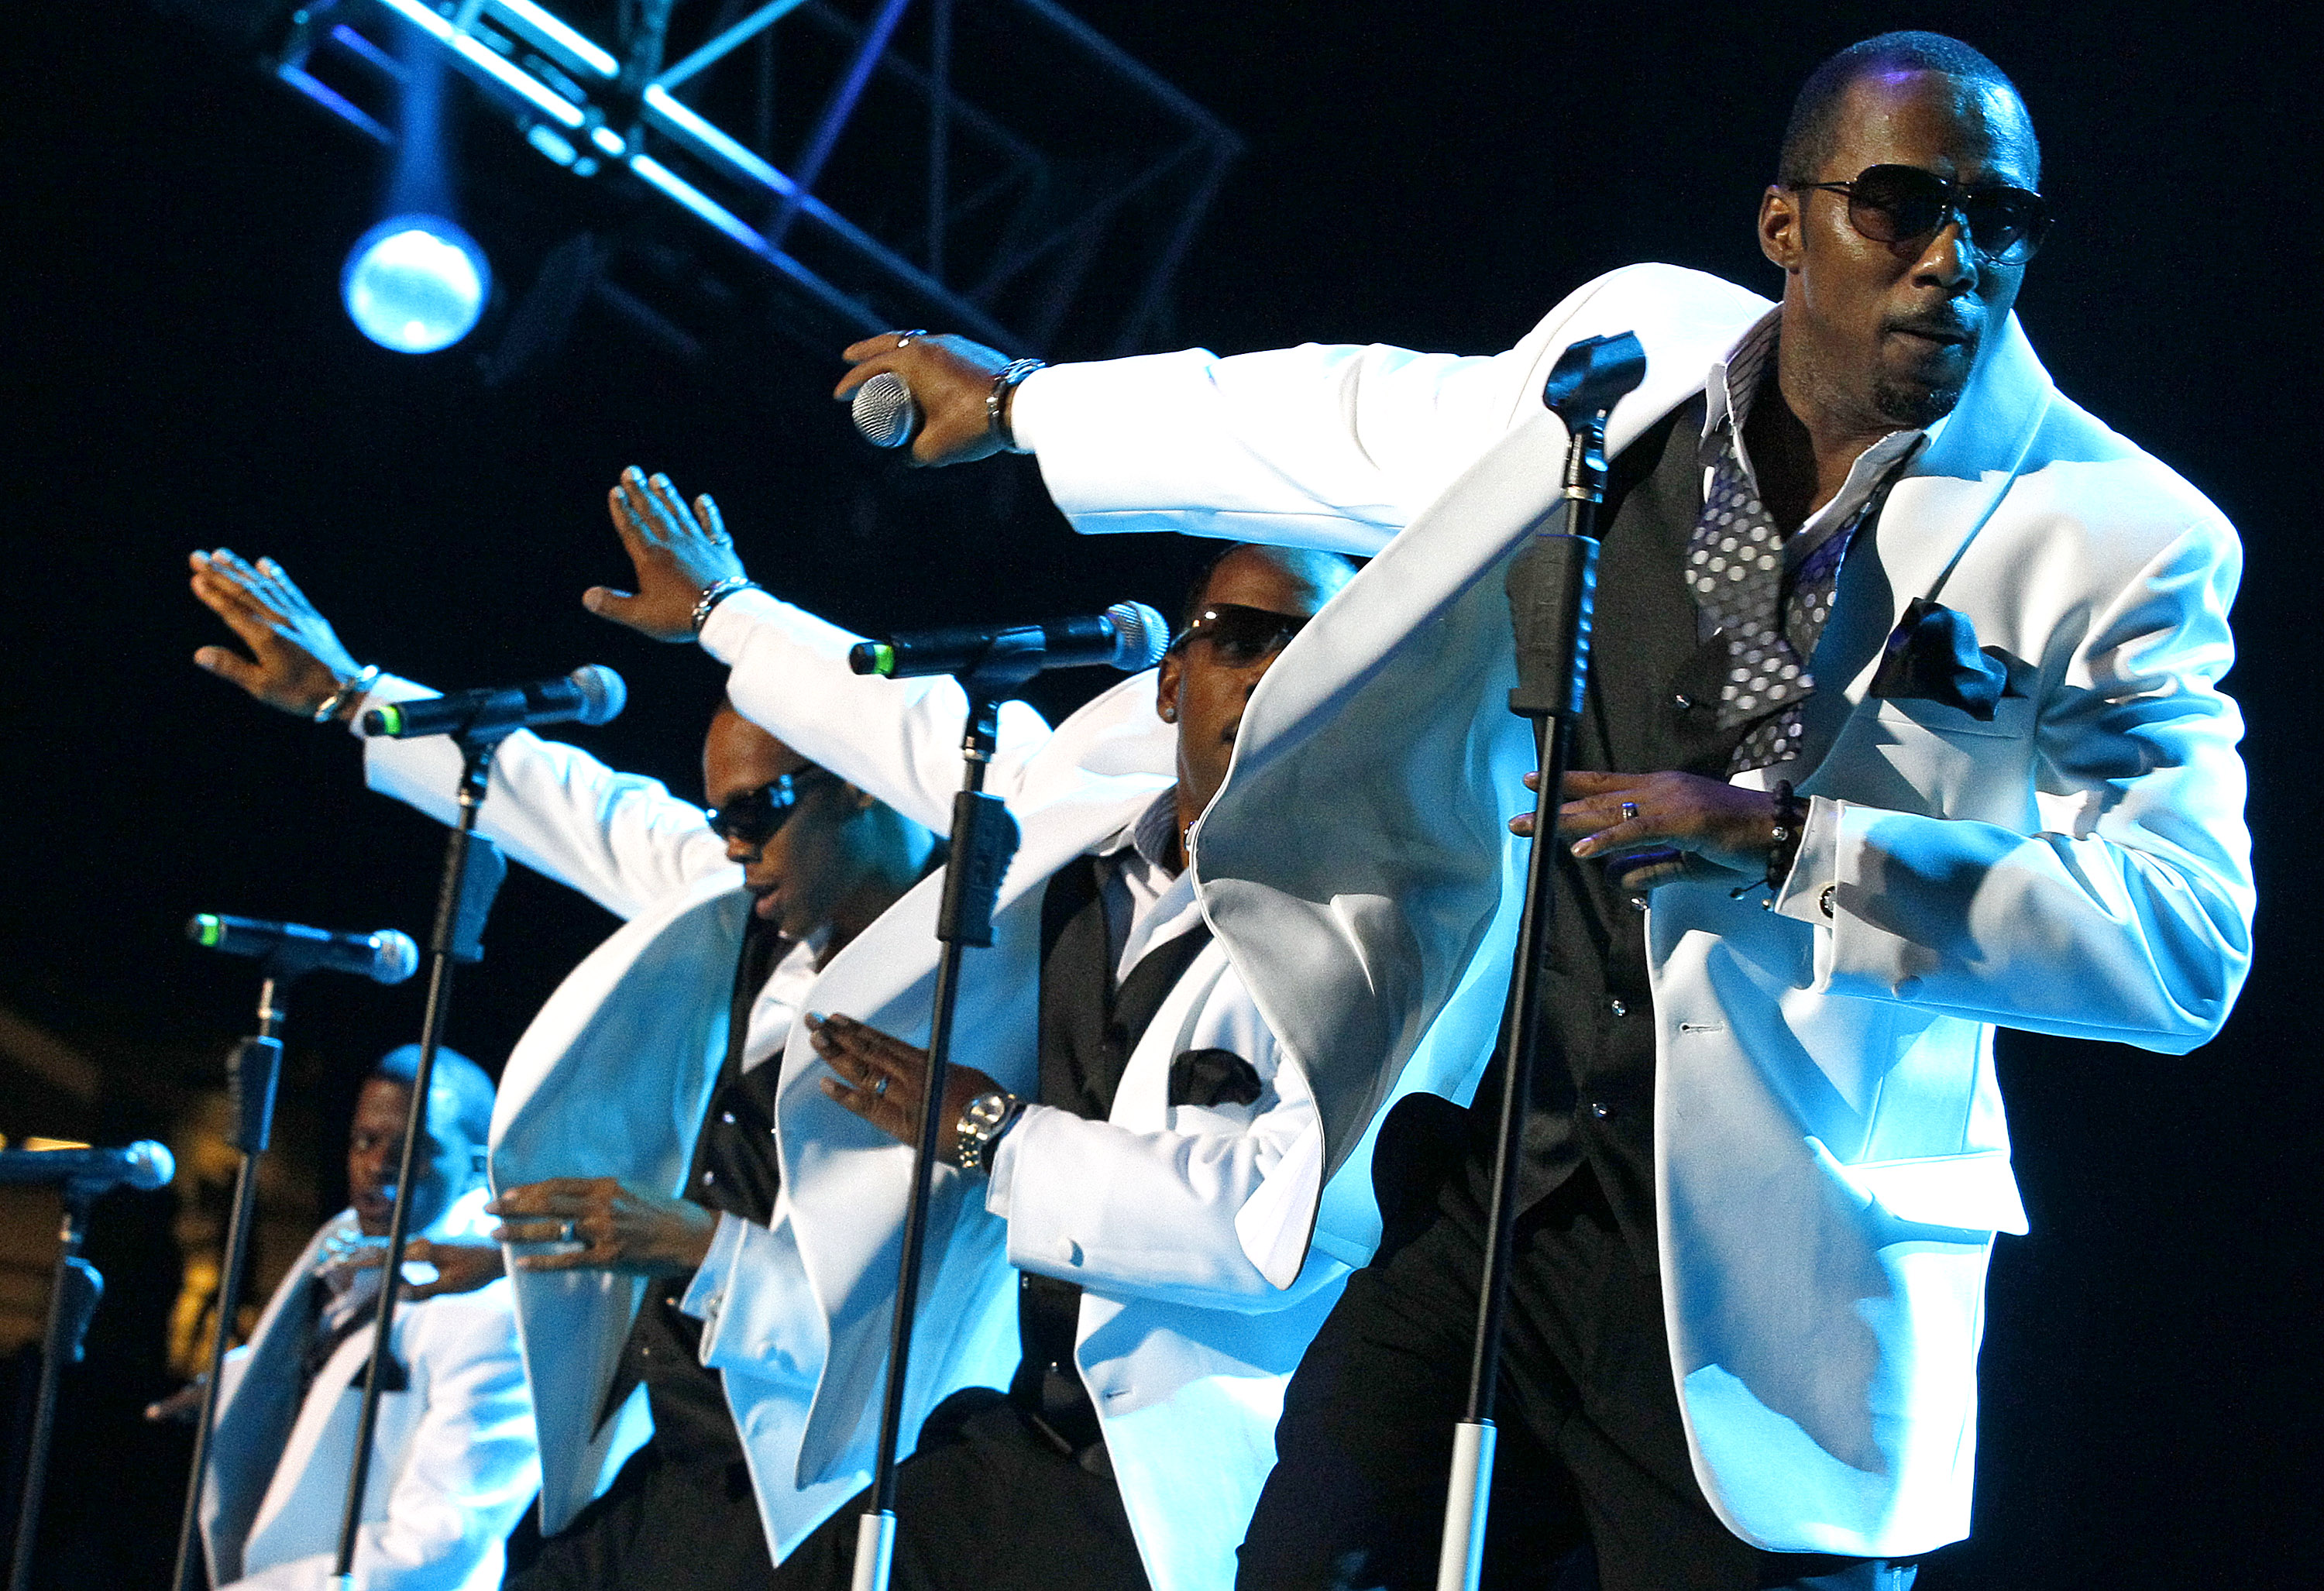 New Edition performs at the Essence Music Festival in New Orleans, Sunday, July 3, 2011.